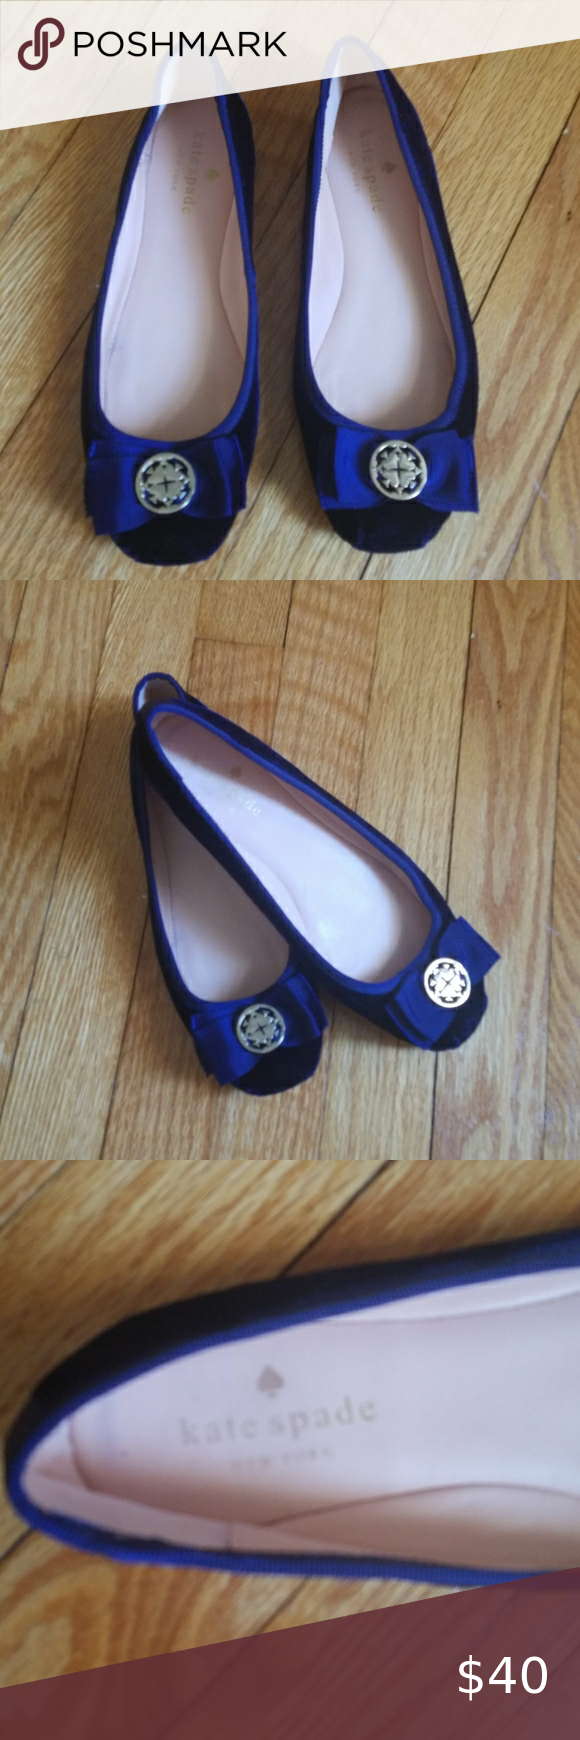 Kate Spade Navy Blue Flats Size 6.5M in